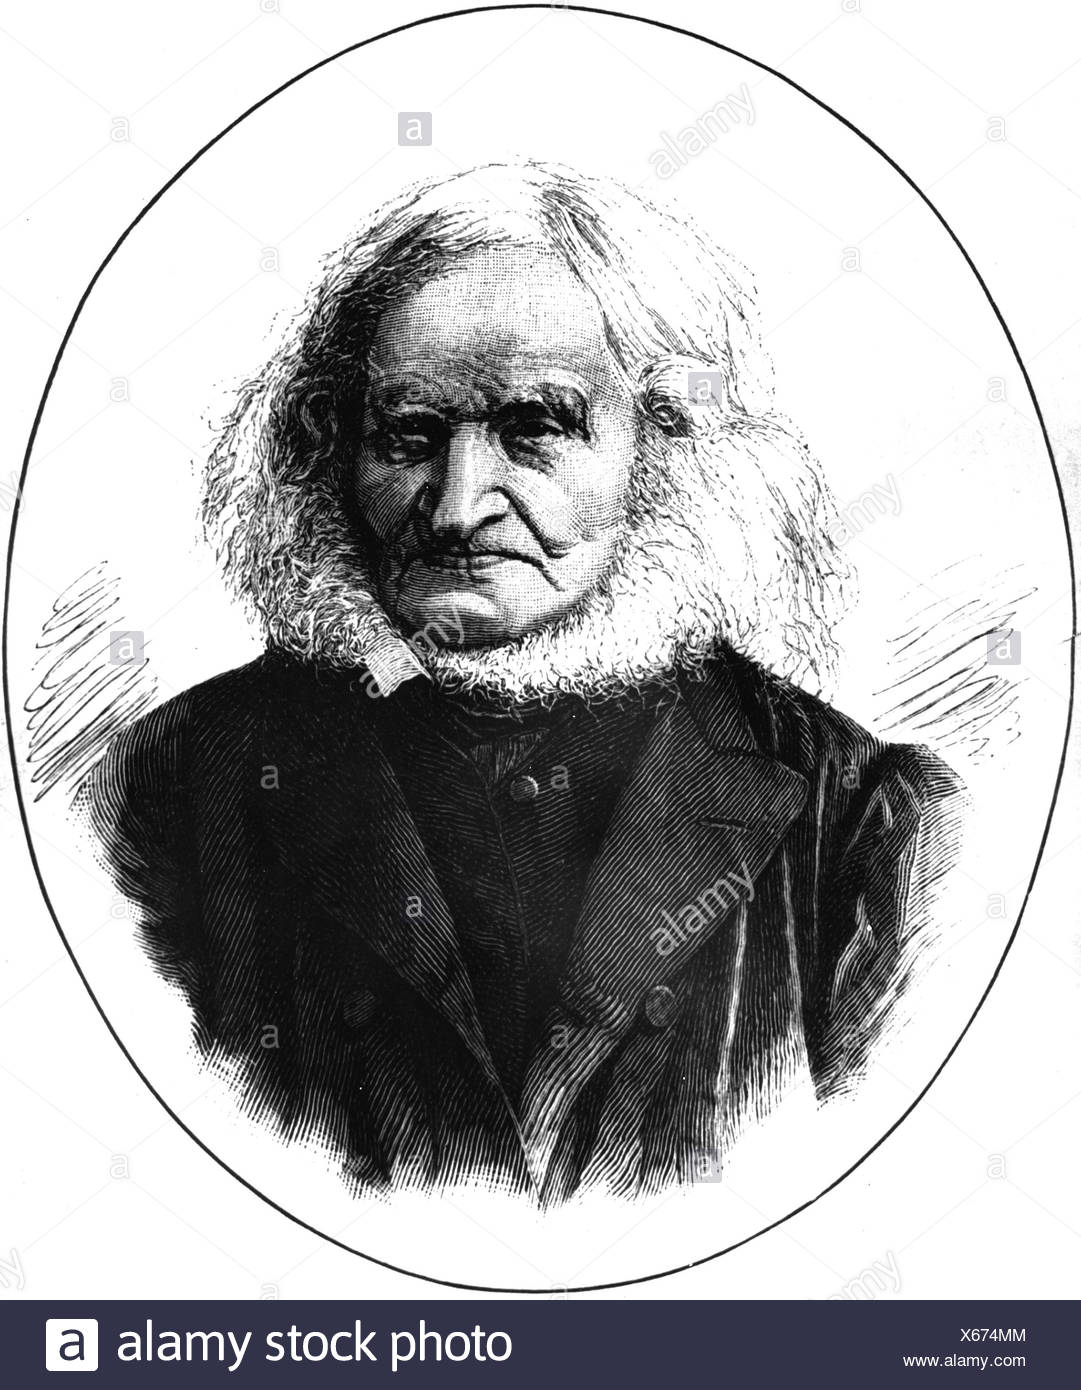 Zunz, Leopold, 10.8.1794 - 17.3.1886, German theologian (Jewish), founder of the 'Science of Judaism', portrait, wood engraving, 19th century, Additional-Rights-Clearances-NA - Stock Image